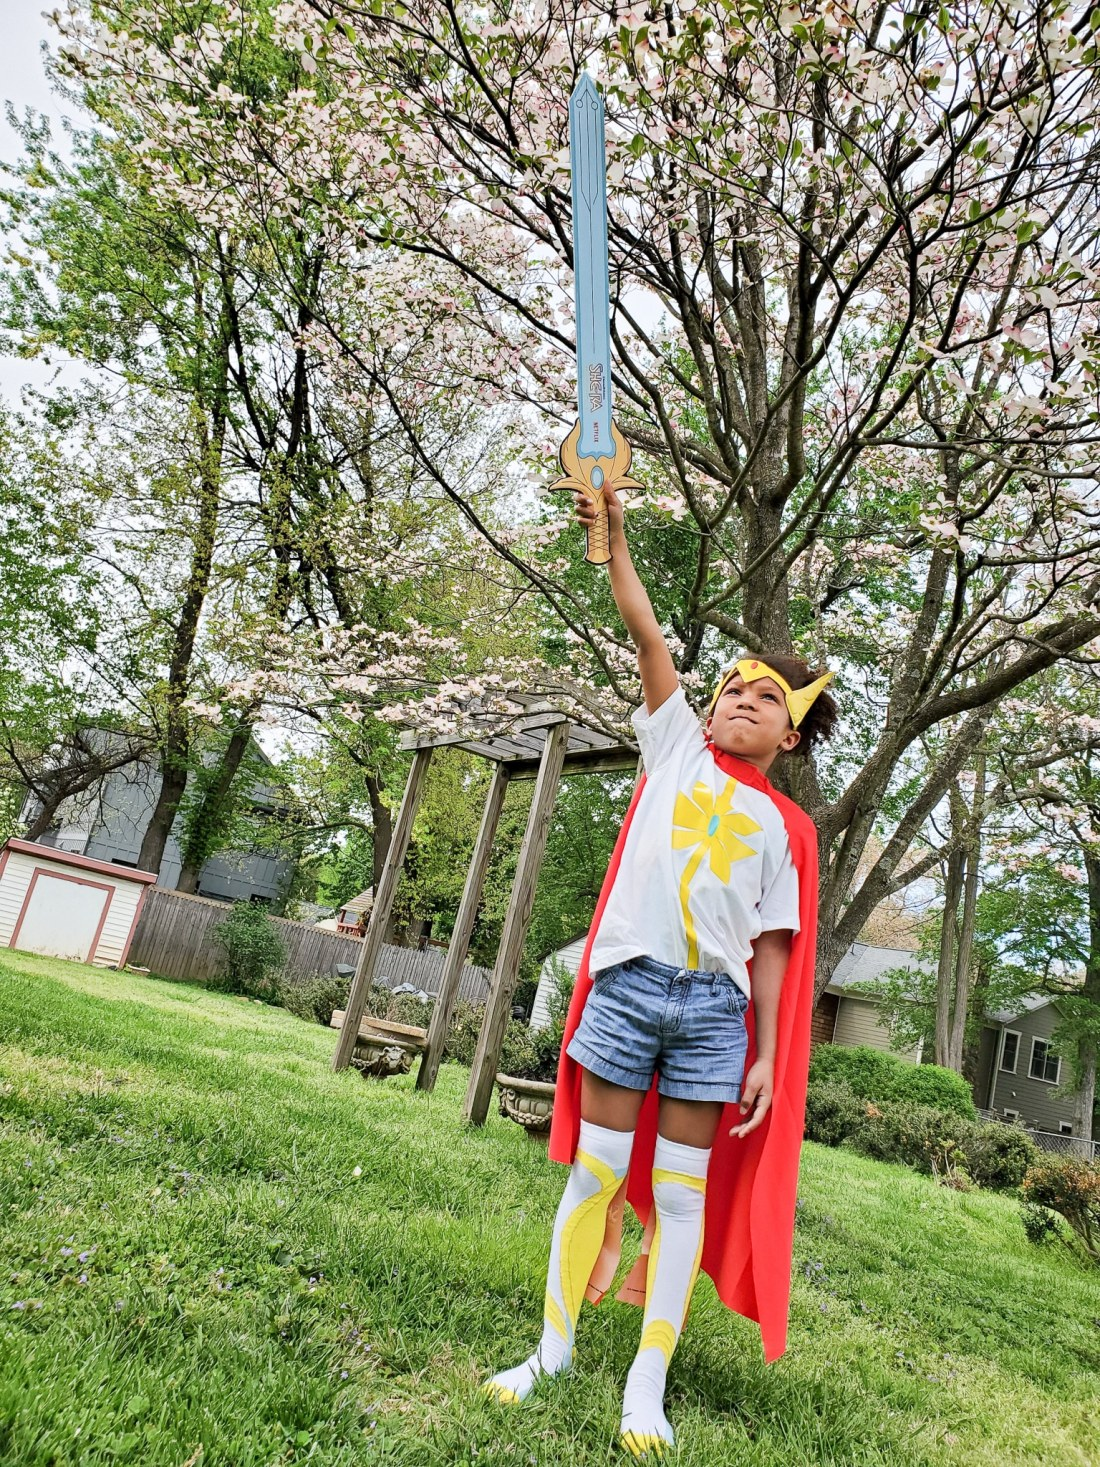 Esuun She Ra Season 2 Costume. Mark your calendars because on April 26th DreamWorks She-Ra and the Princesses of Power is roaring back to Netflix for the Honor of Grayskull. The series creator promises there will be cool new characters and story lines that didn't make it into the first season of She-Ra.